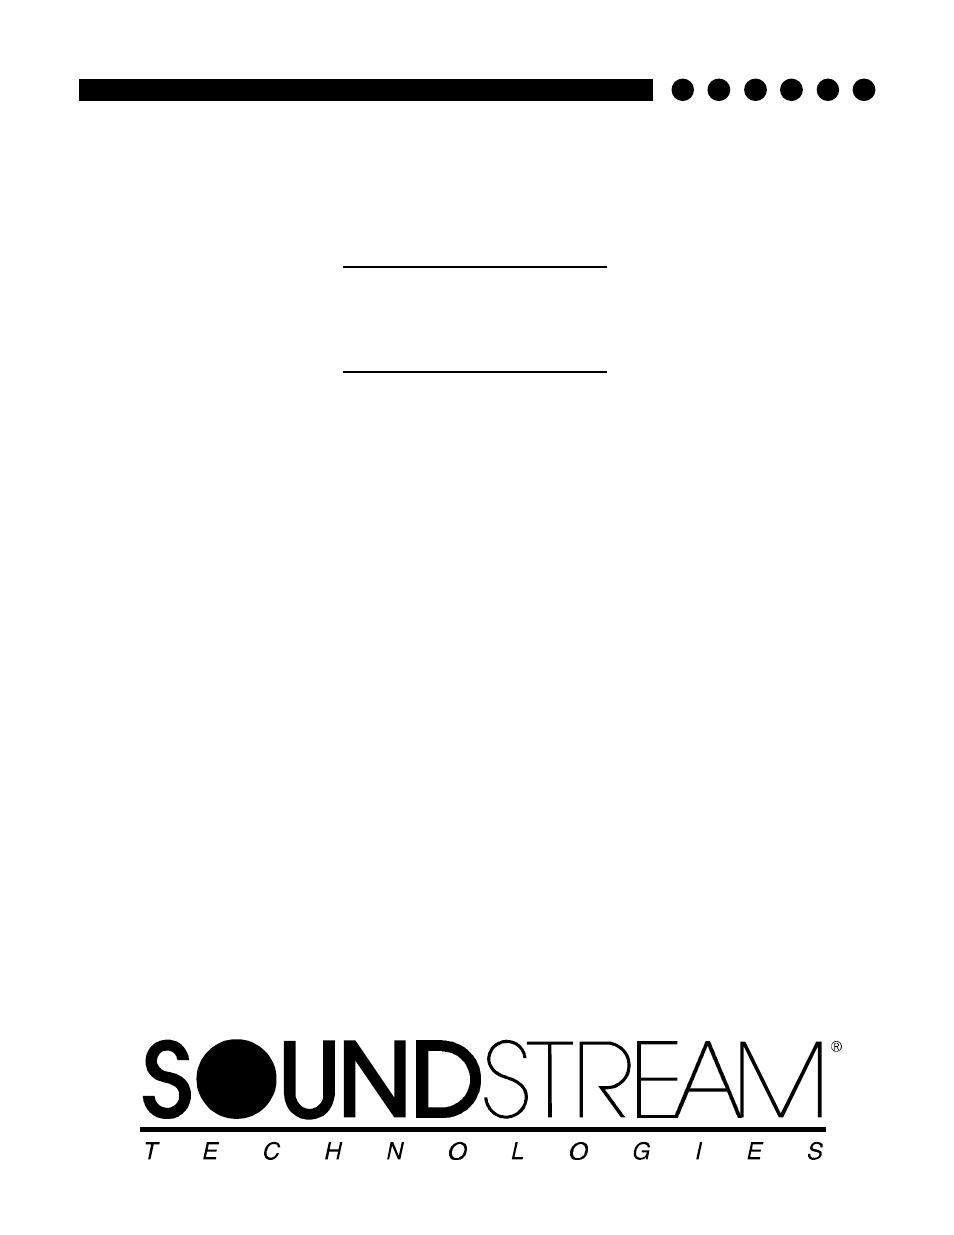 Soundstream Technologies PICASSO Stereo Amplifier User